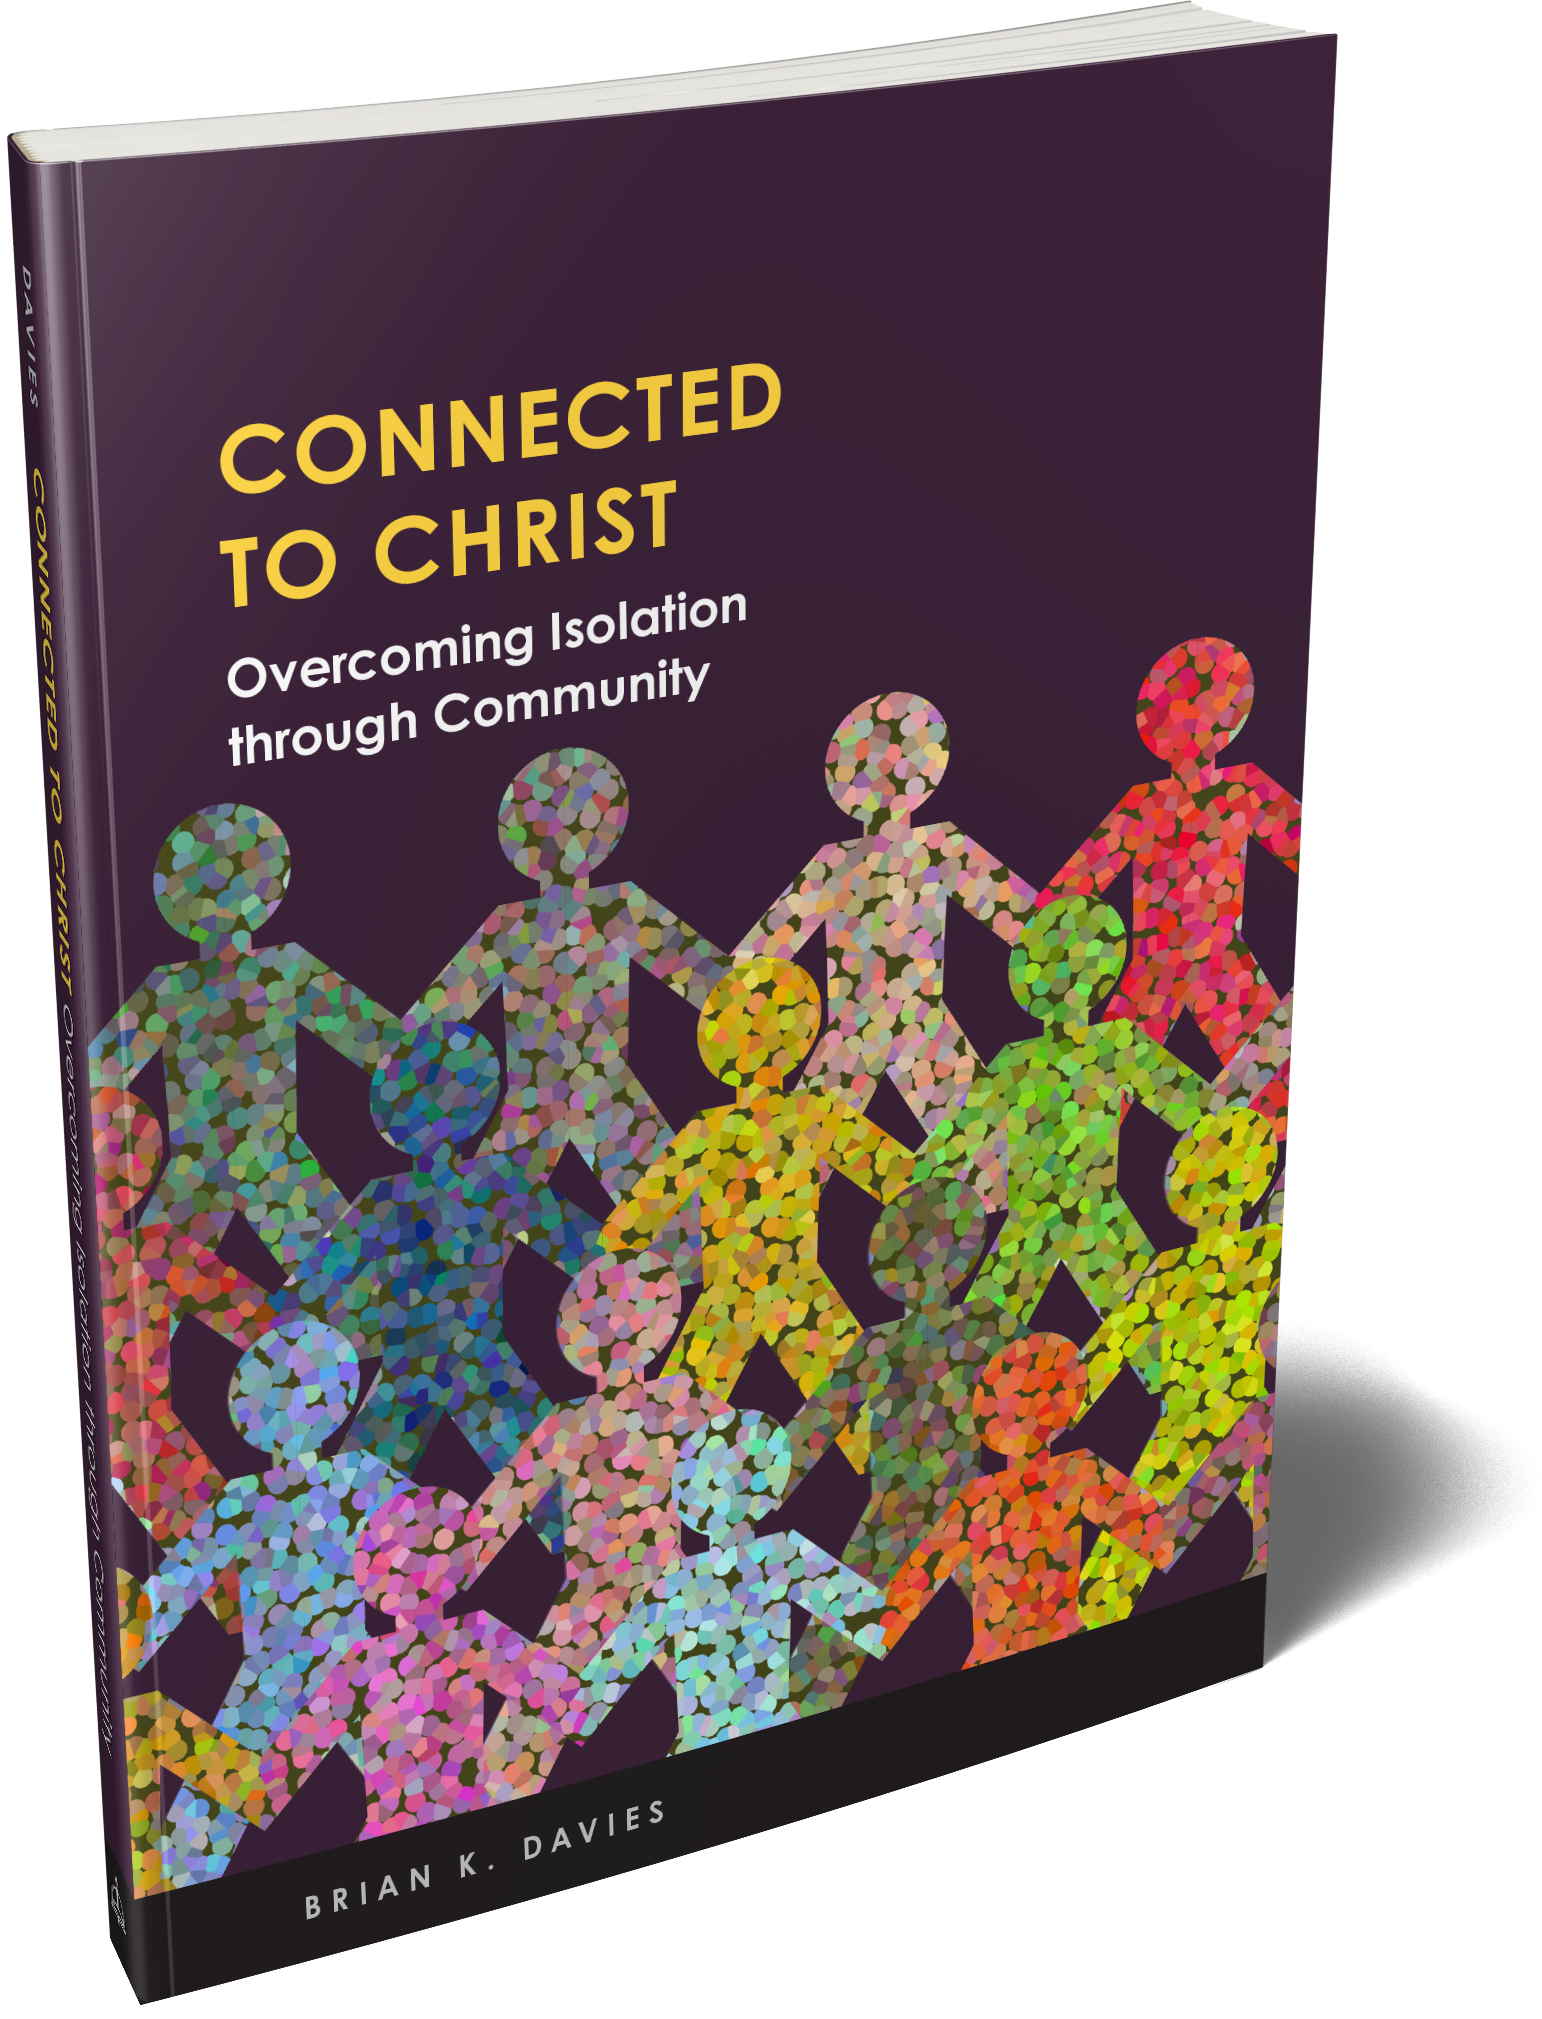 Connected to Christ: Overcoming Isolation Through Community